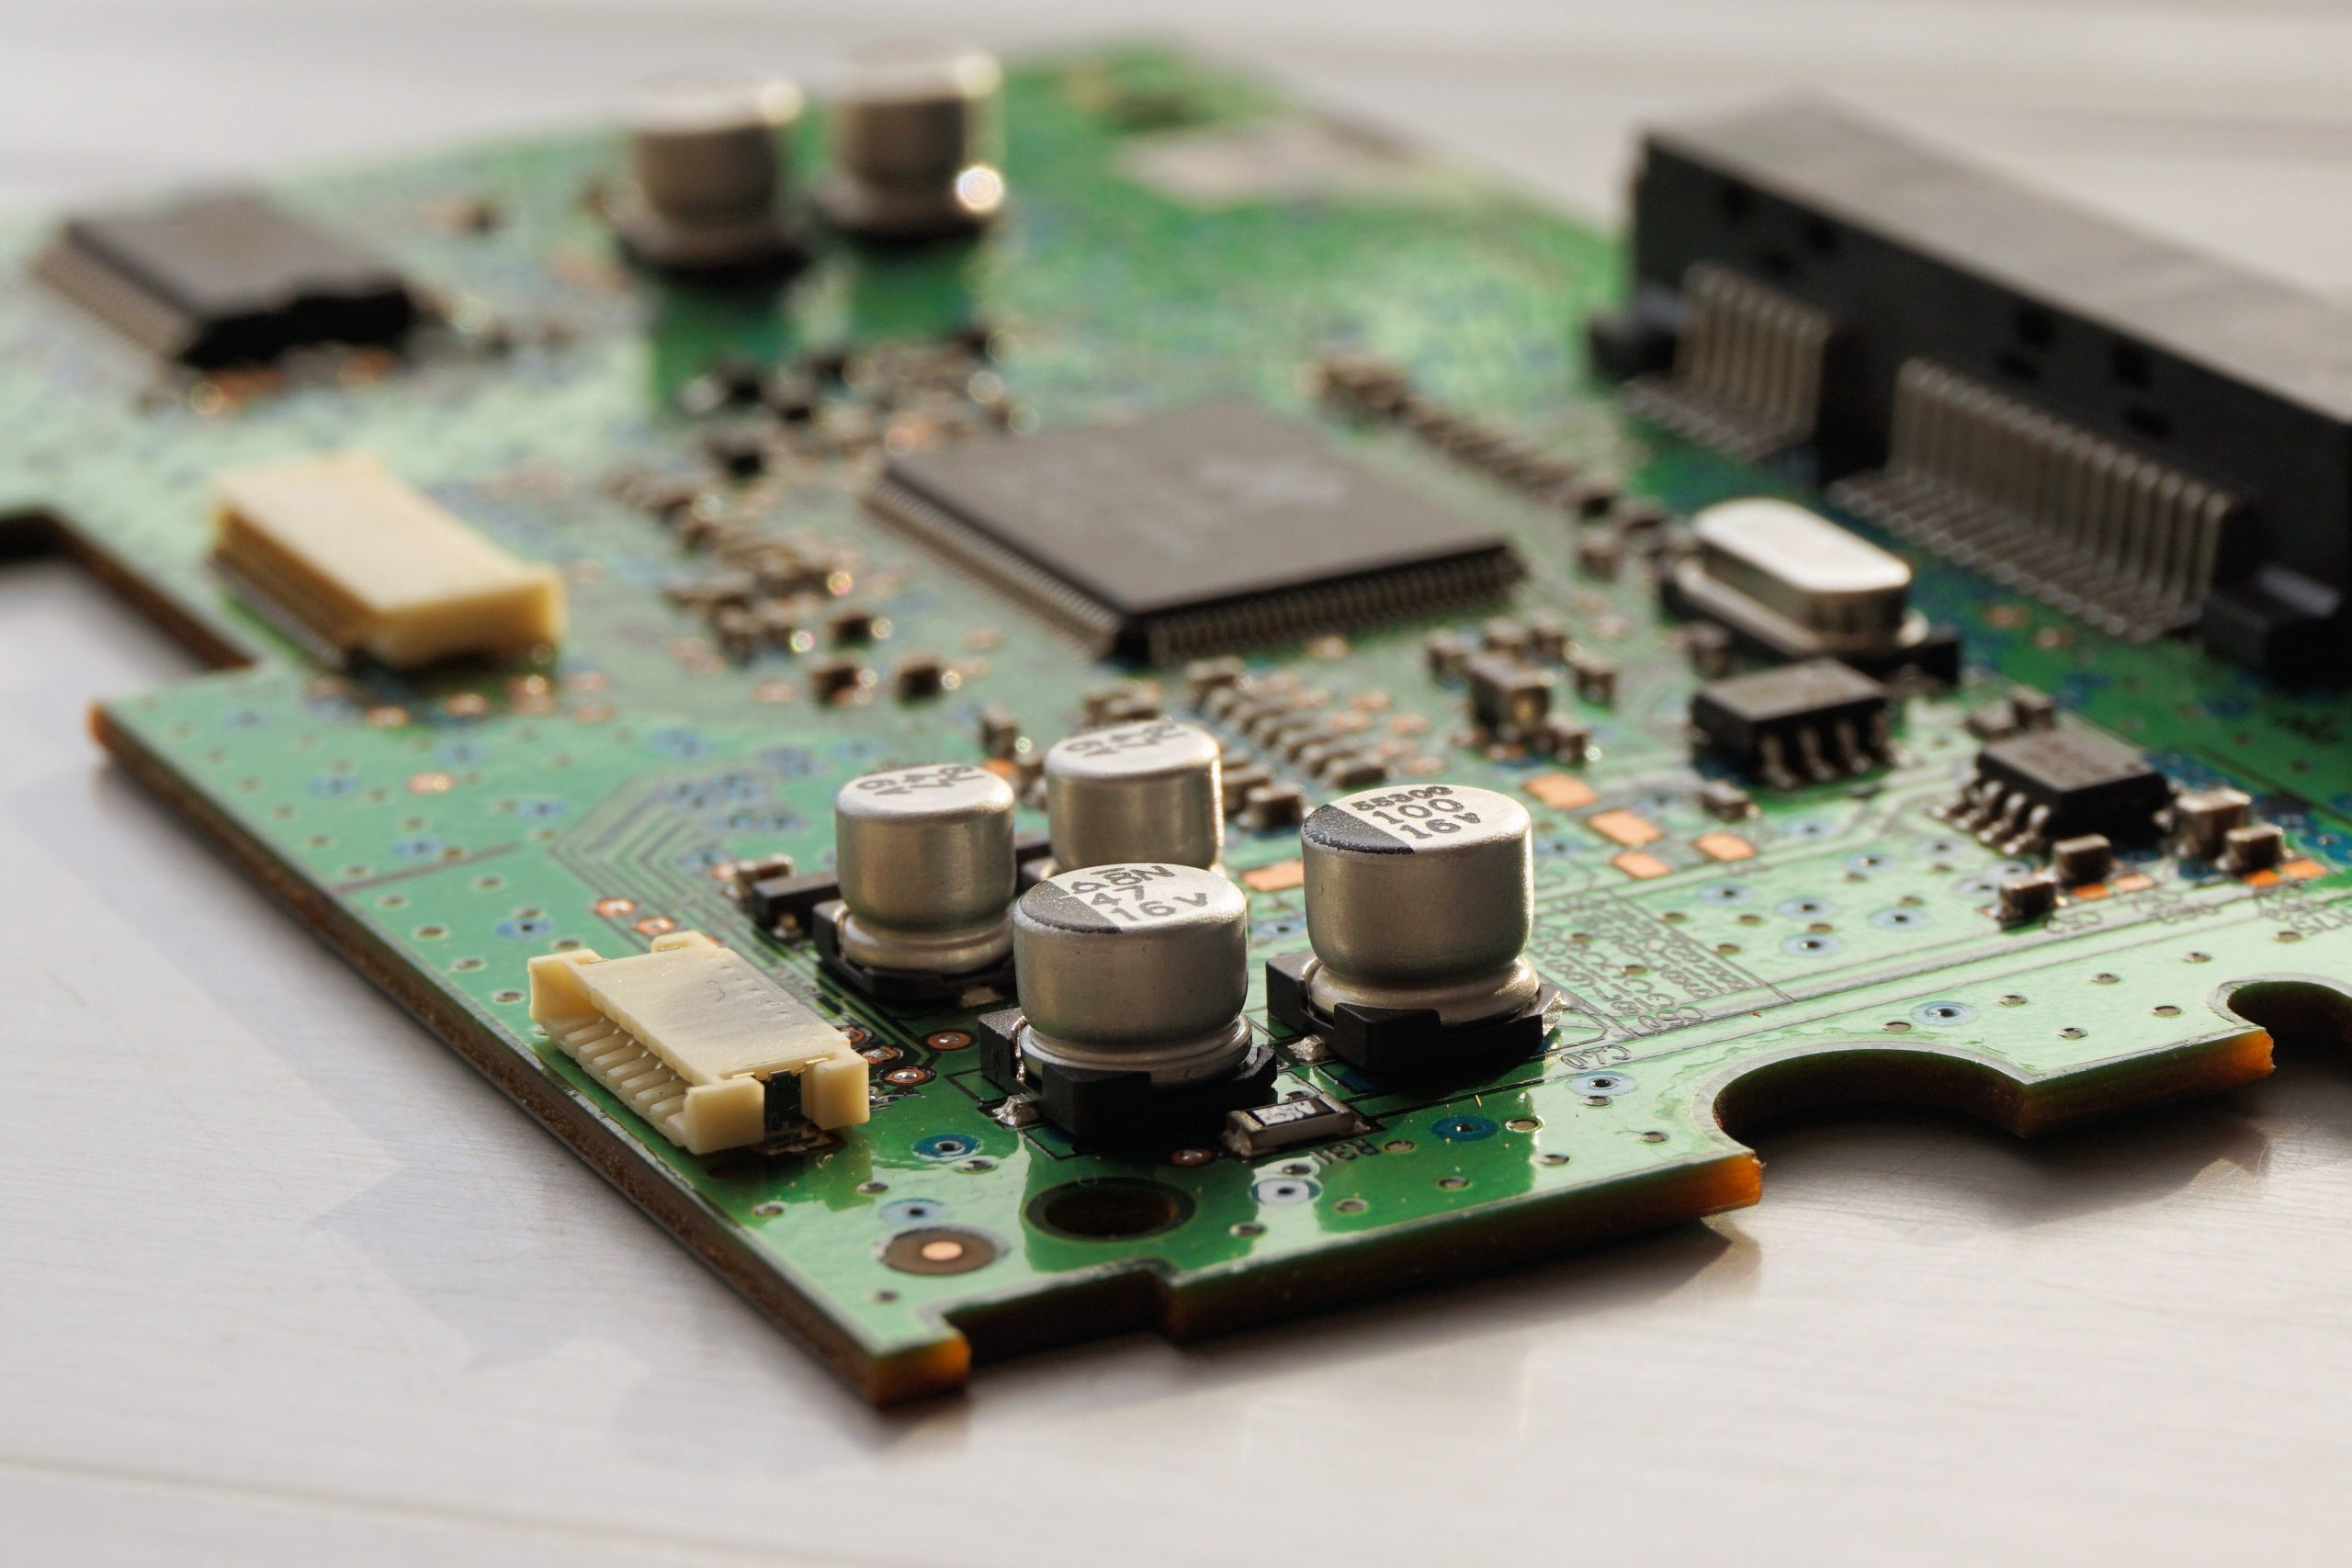 The Pros And Cons Of Using An Online Computer Repair Service